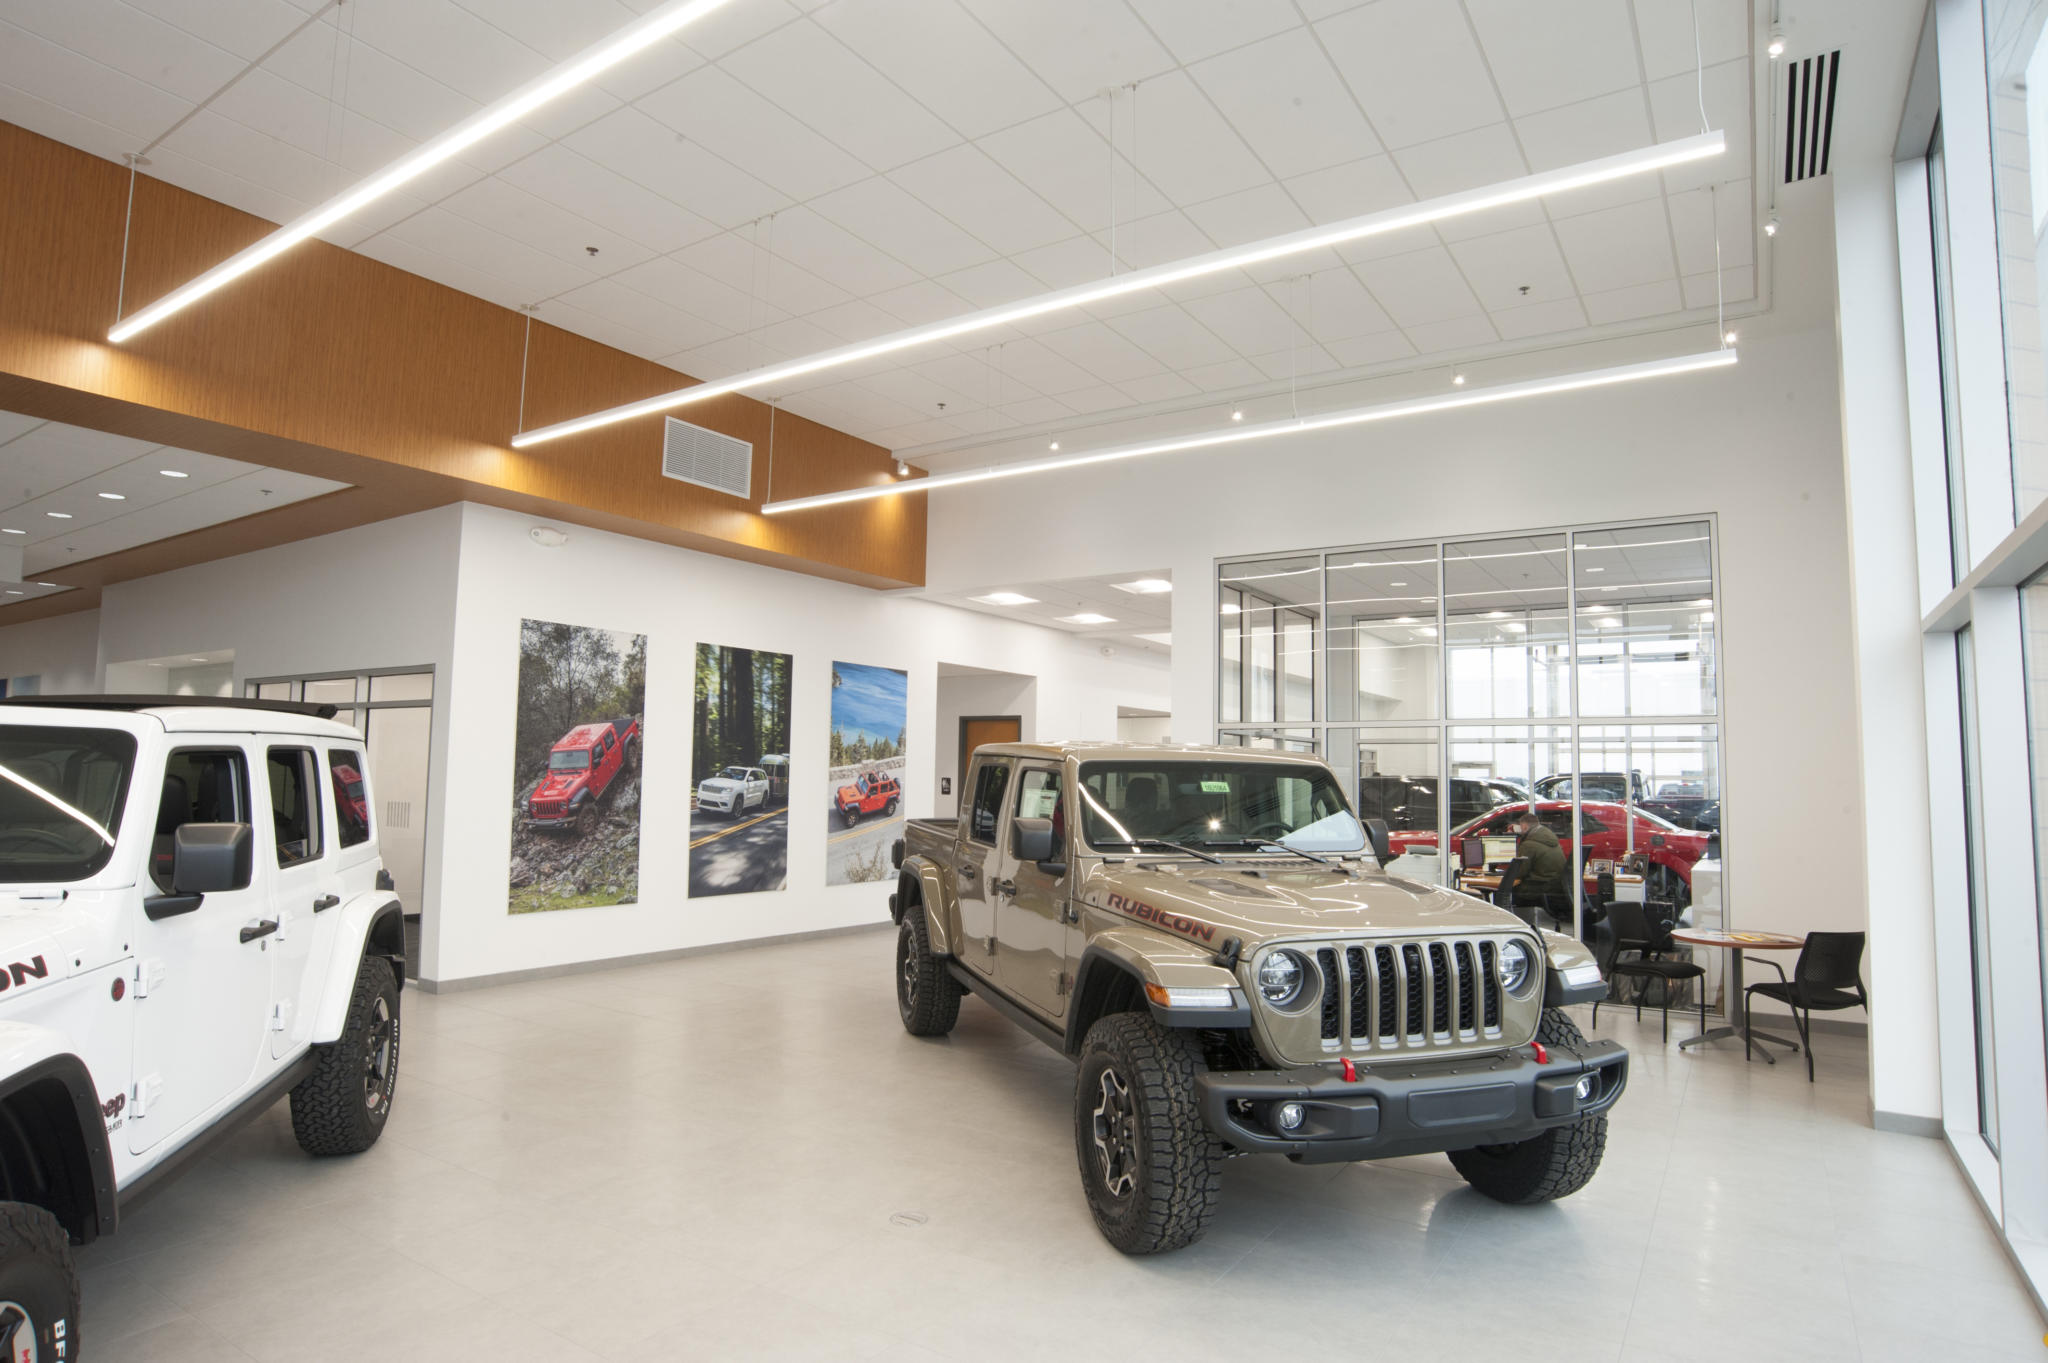 image of a lobby with vehicle inside of it at car dealership